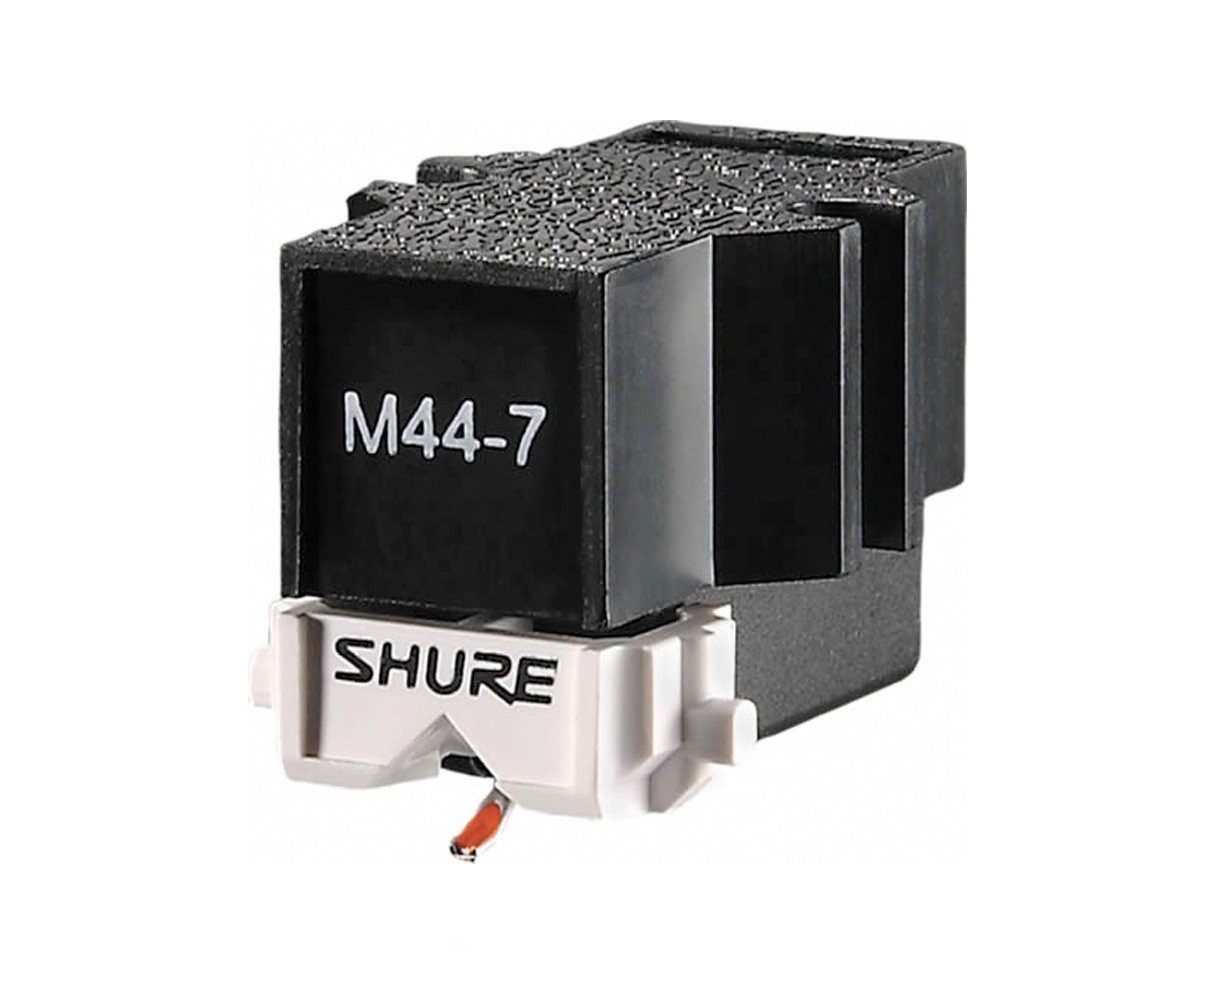 shr-m44-7 review